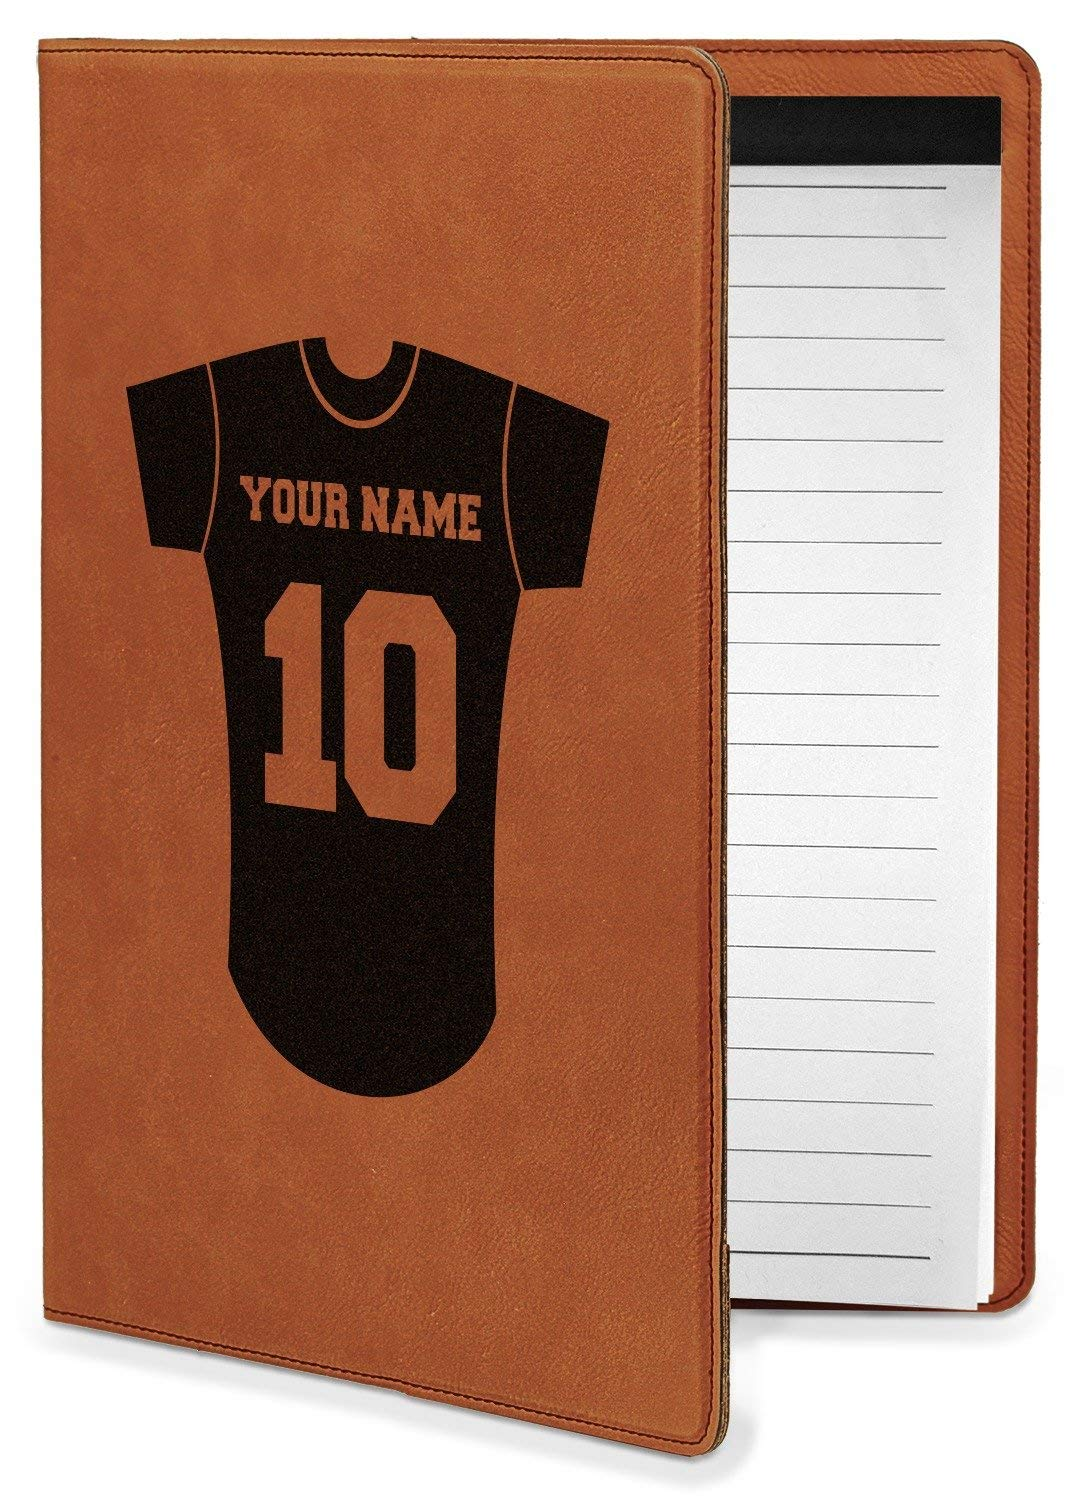 Baseball Jersey Leatherette Portfolio with Notepad - Small - Single Sided (Personalized)